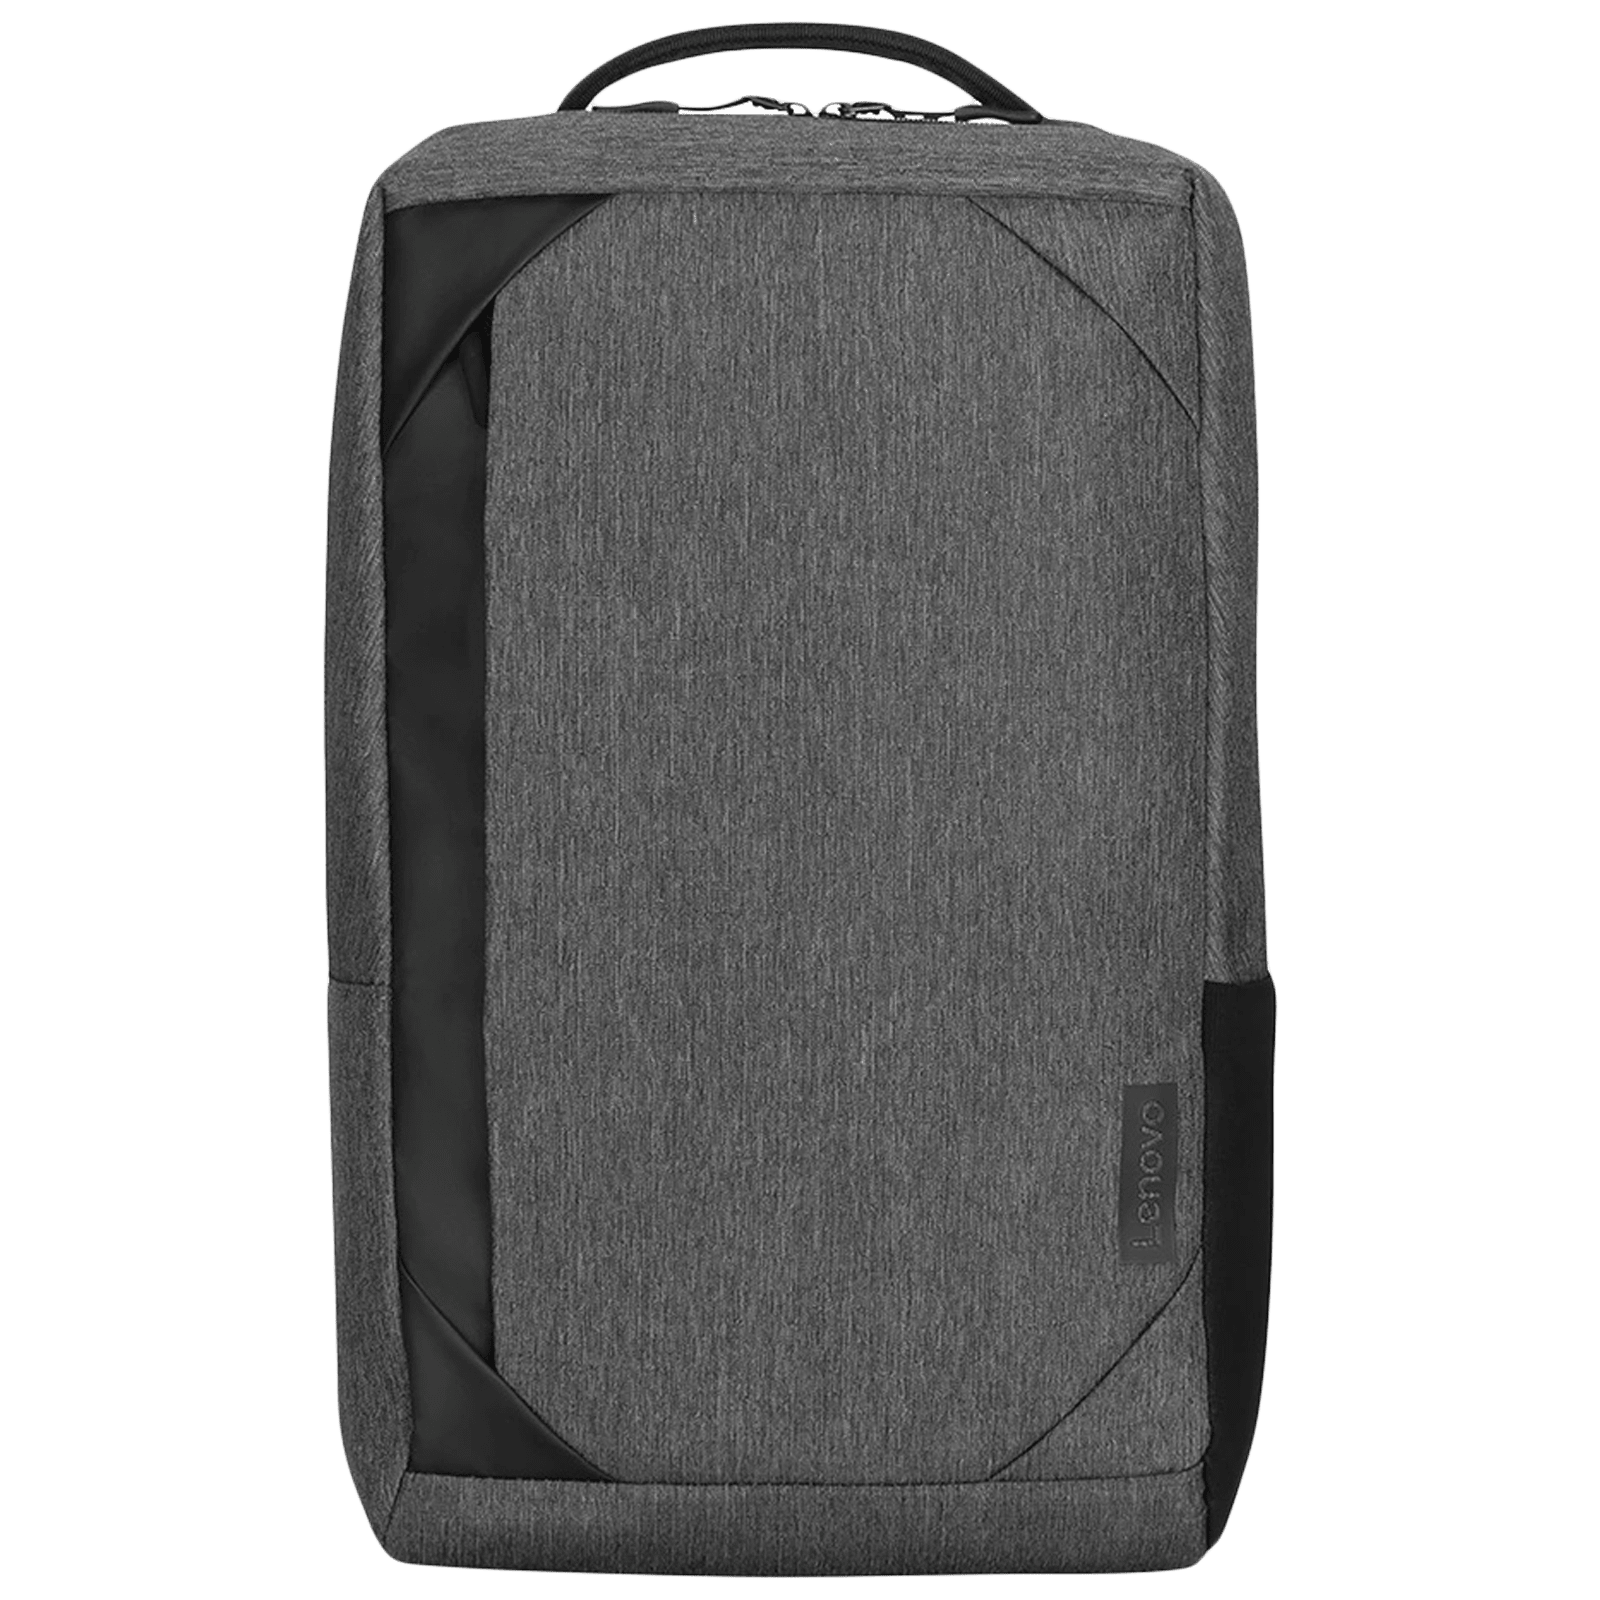 Lenovo Urban B535 17 Litres Polyester Backpack for 15.6 Inch Laptop (Cushioned Laptop Compartment, GX41A41186, Charcoal Grey)